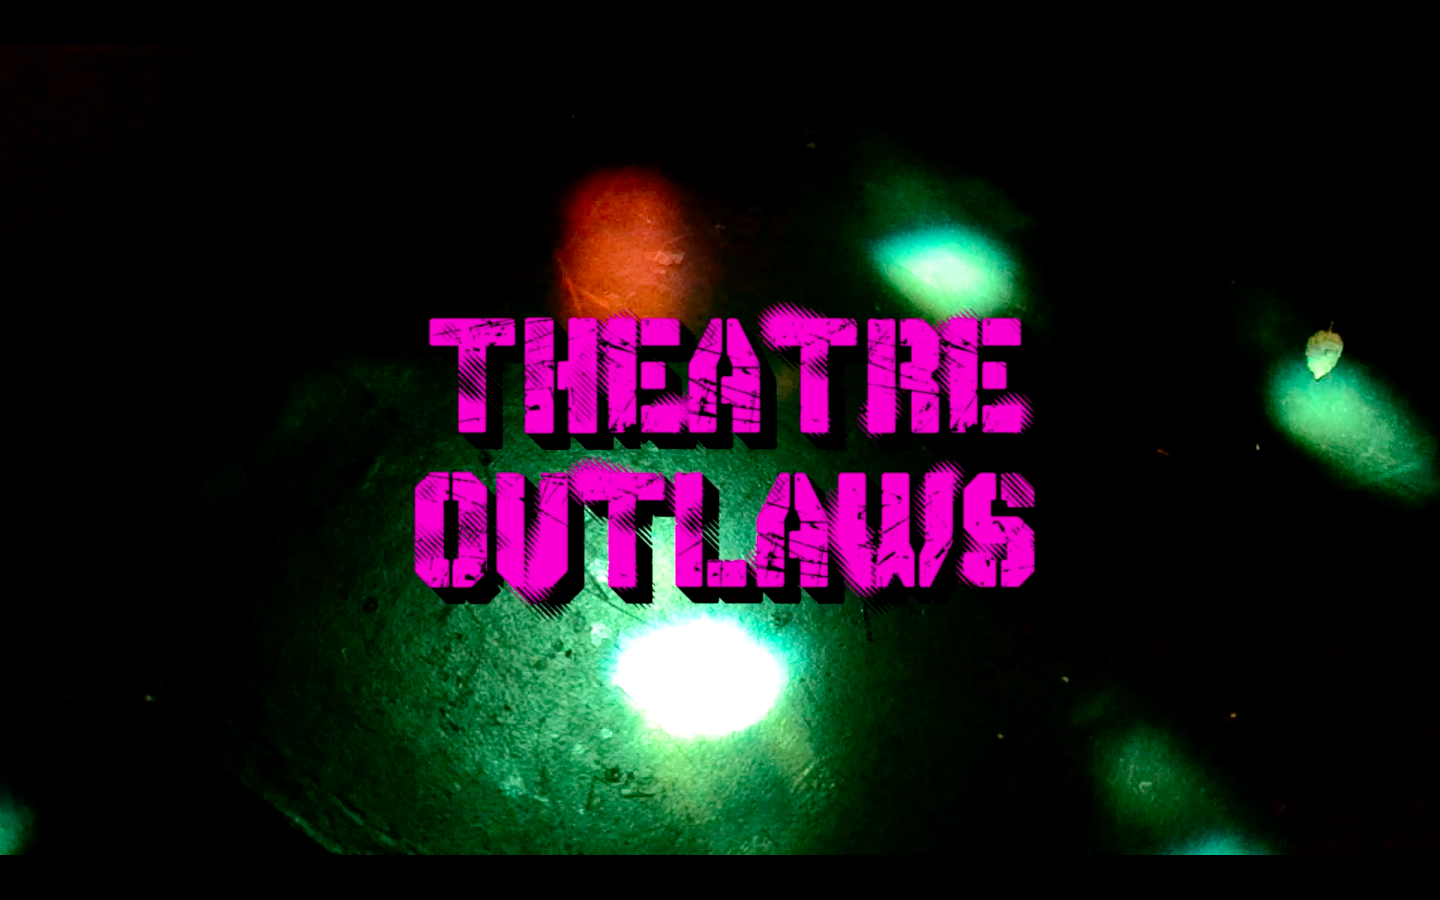 Check out the trailer for Theatre Outlaws,  here .